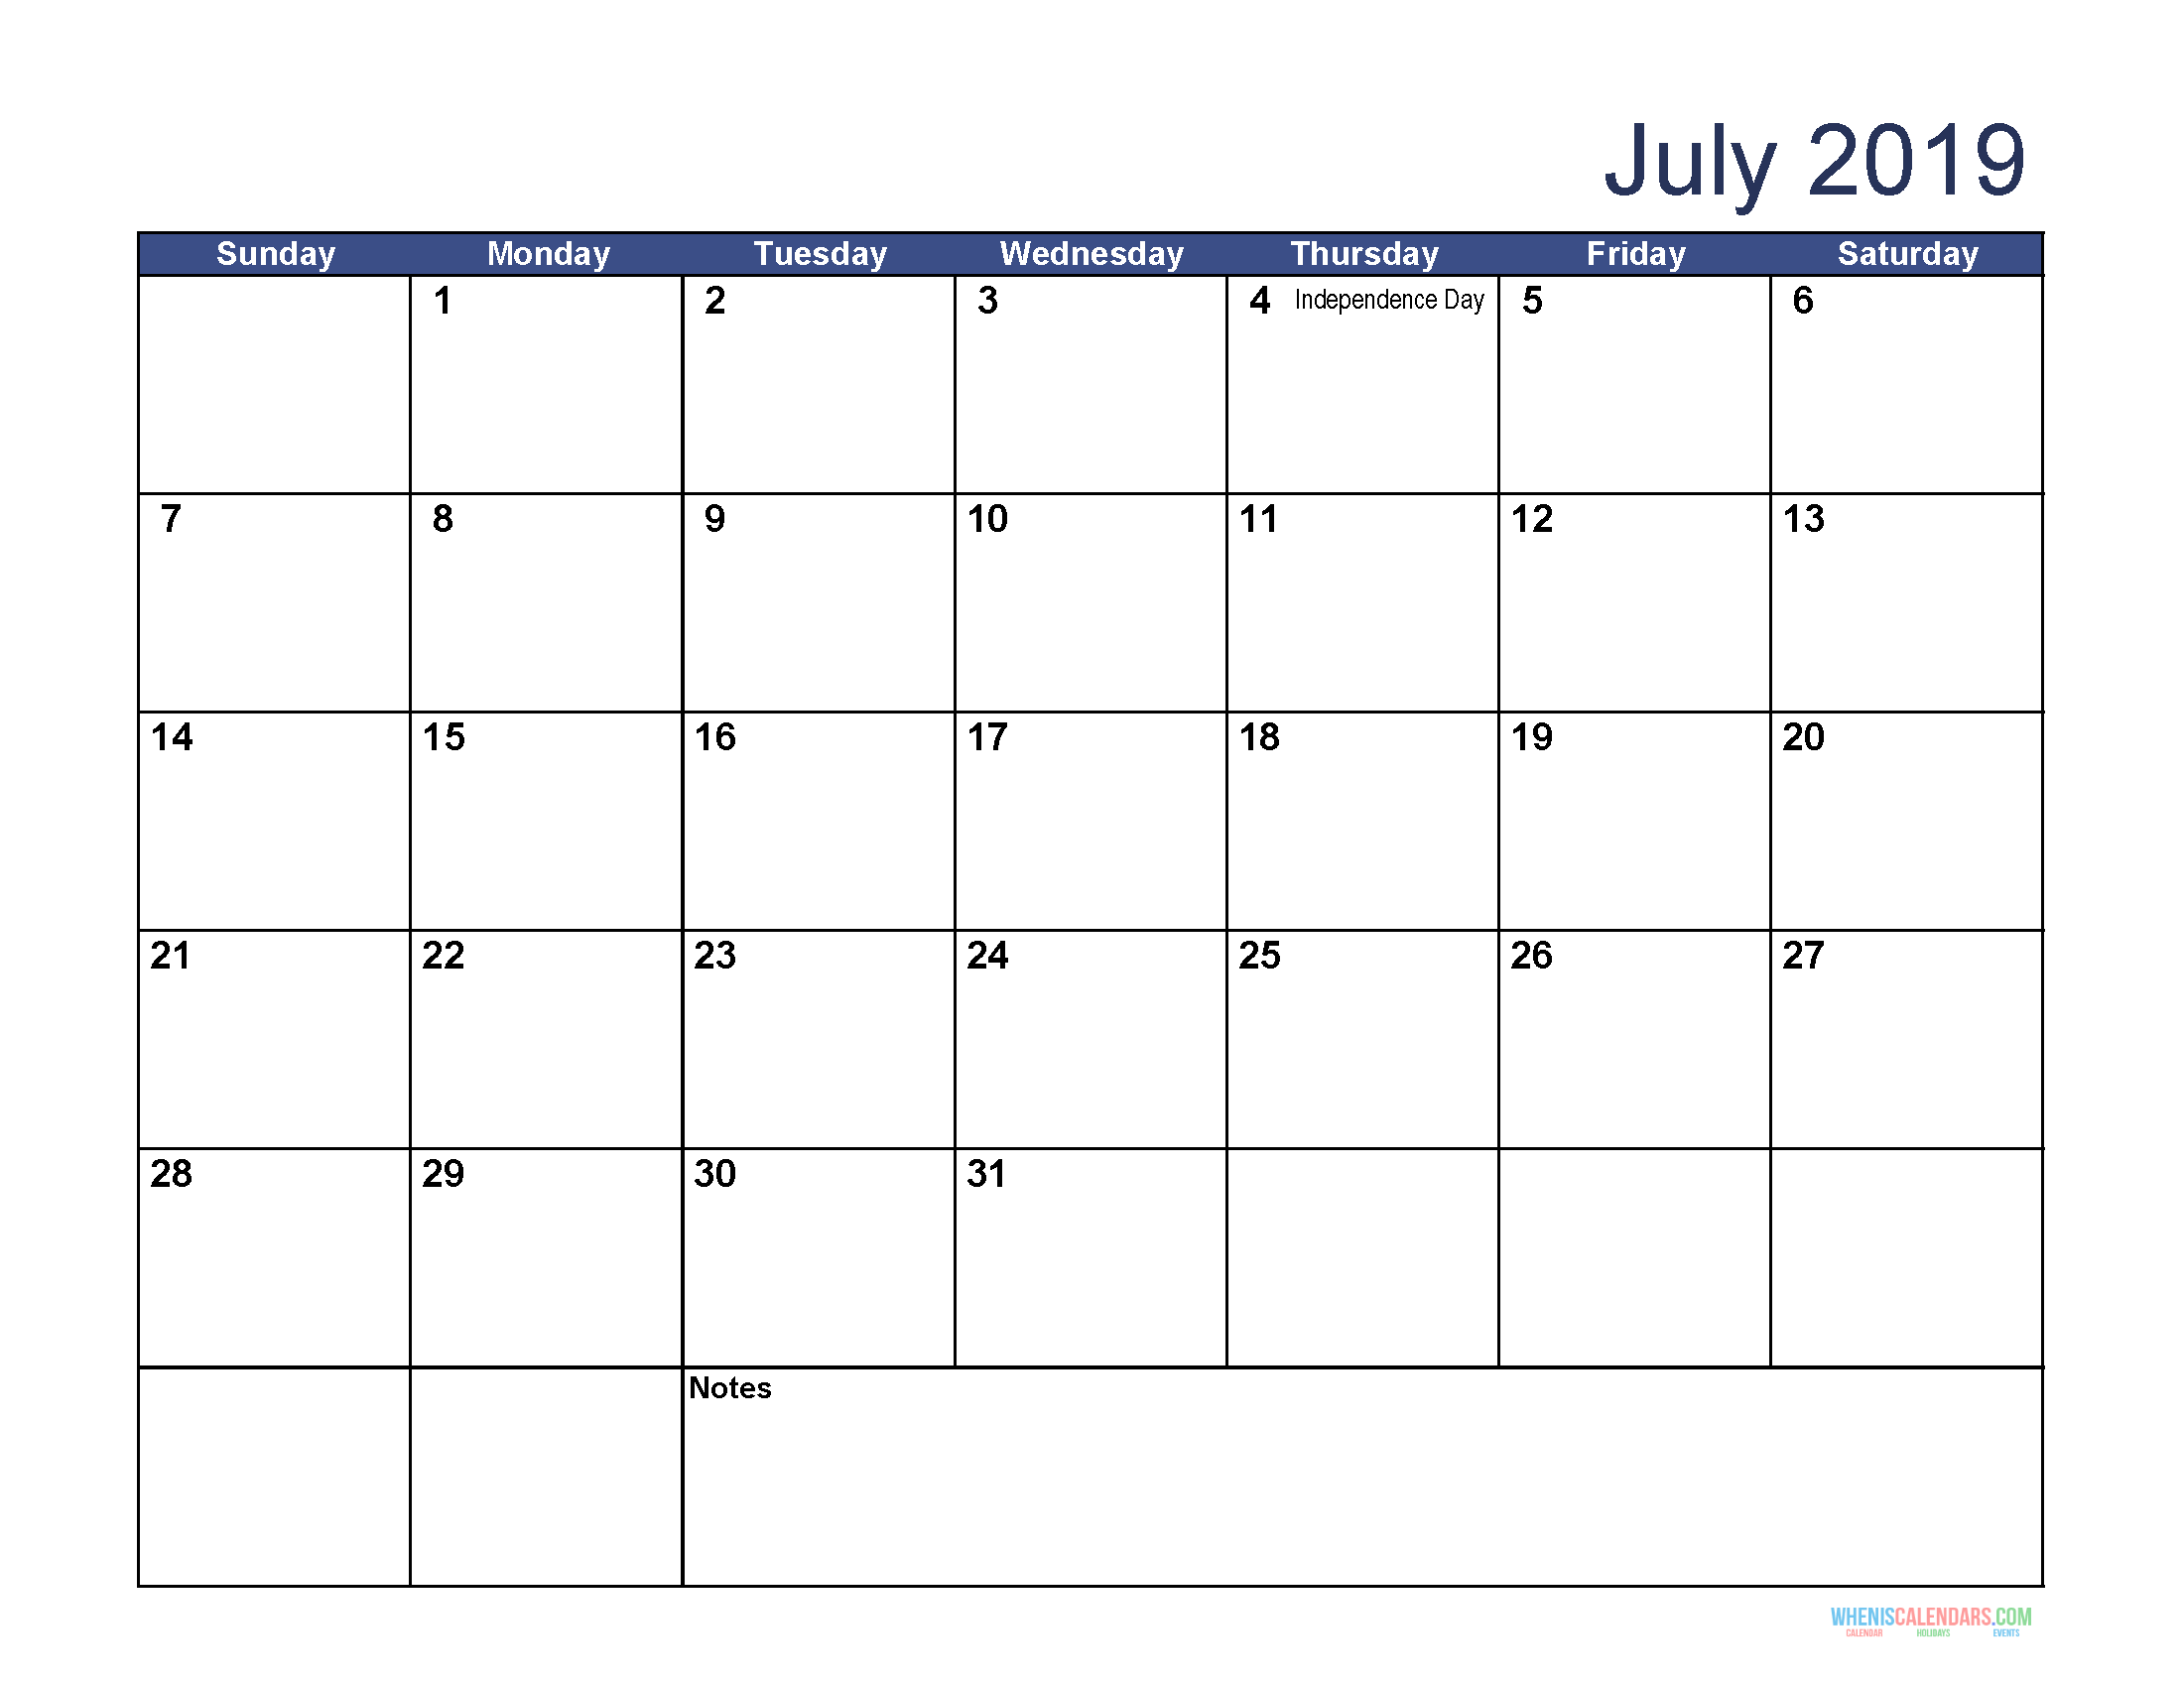 image about Free Printable July Calendar identify July 2019 Calendar with Vacations Printable, July 2019